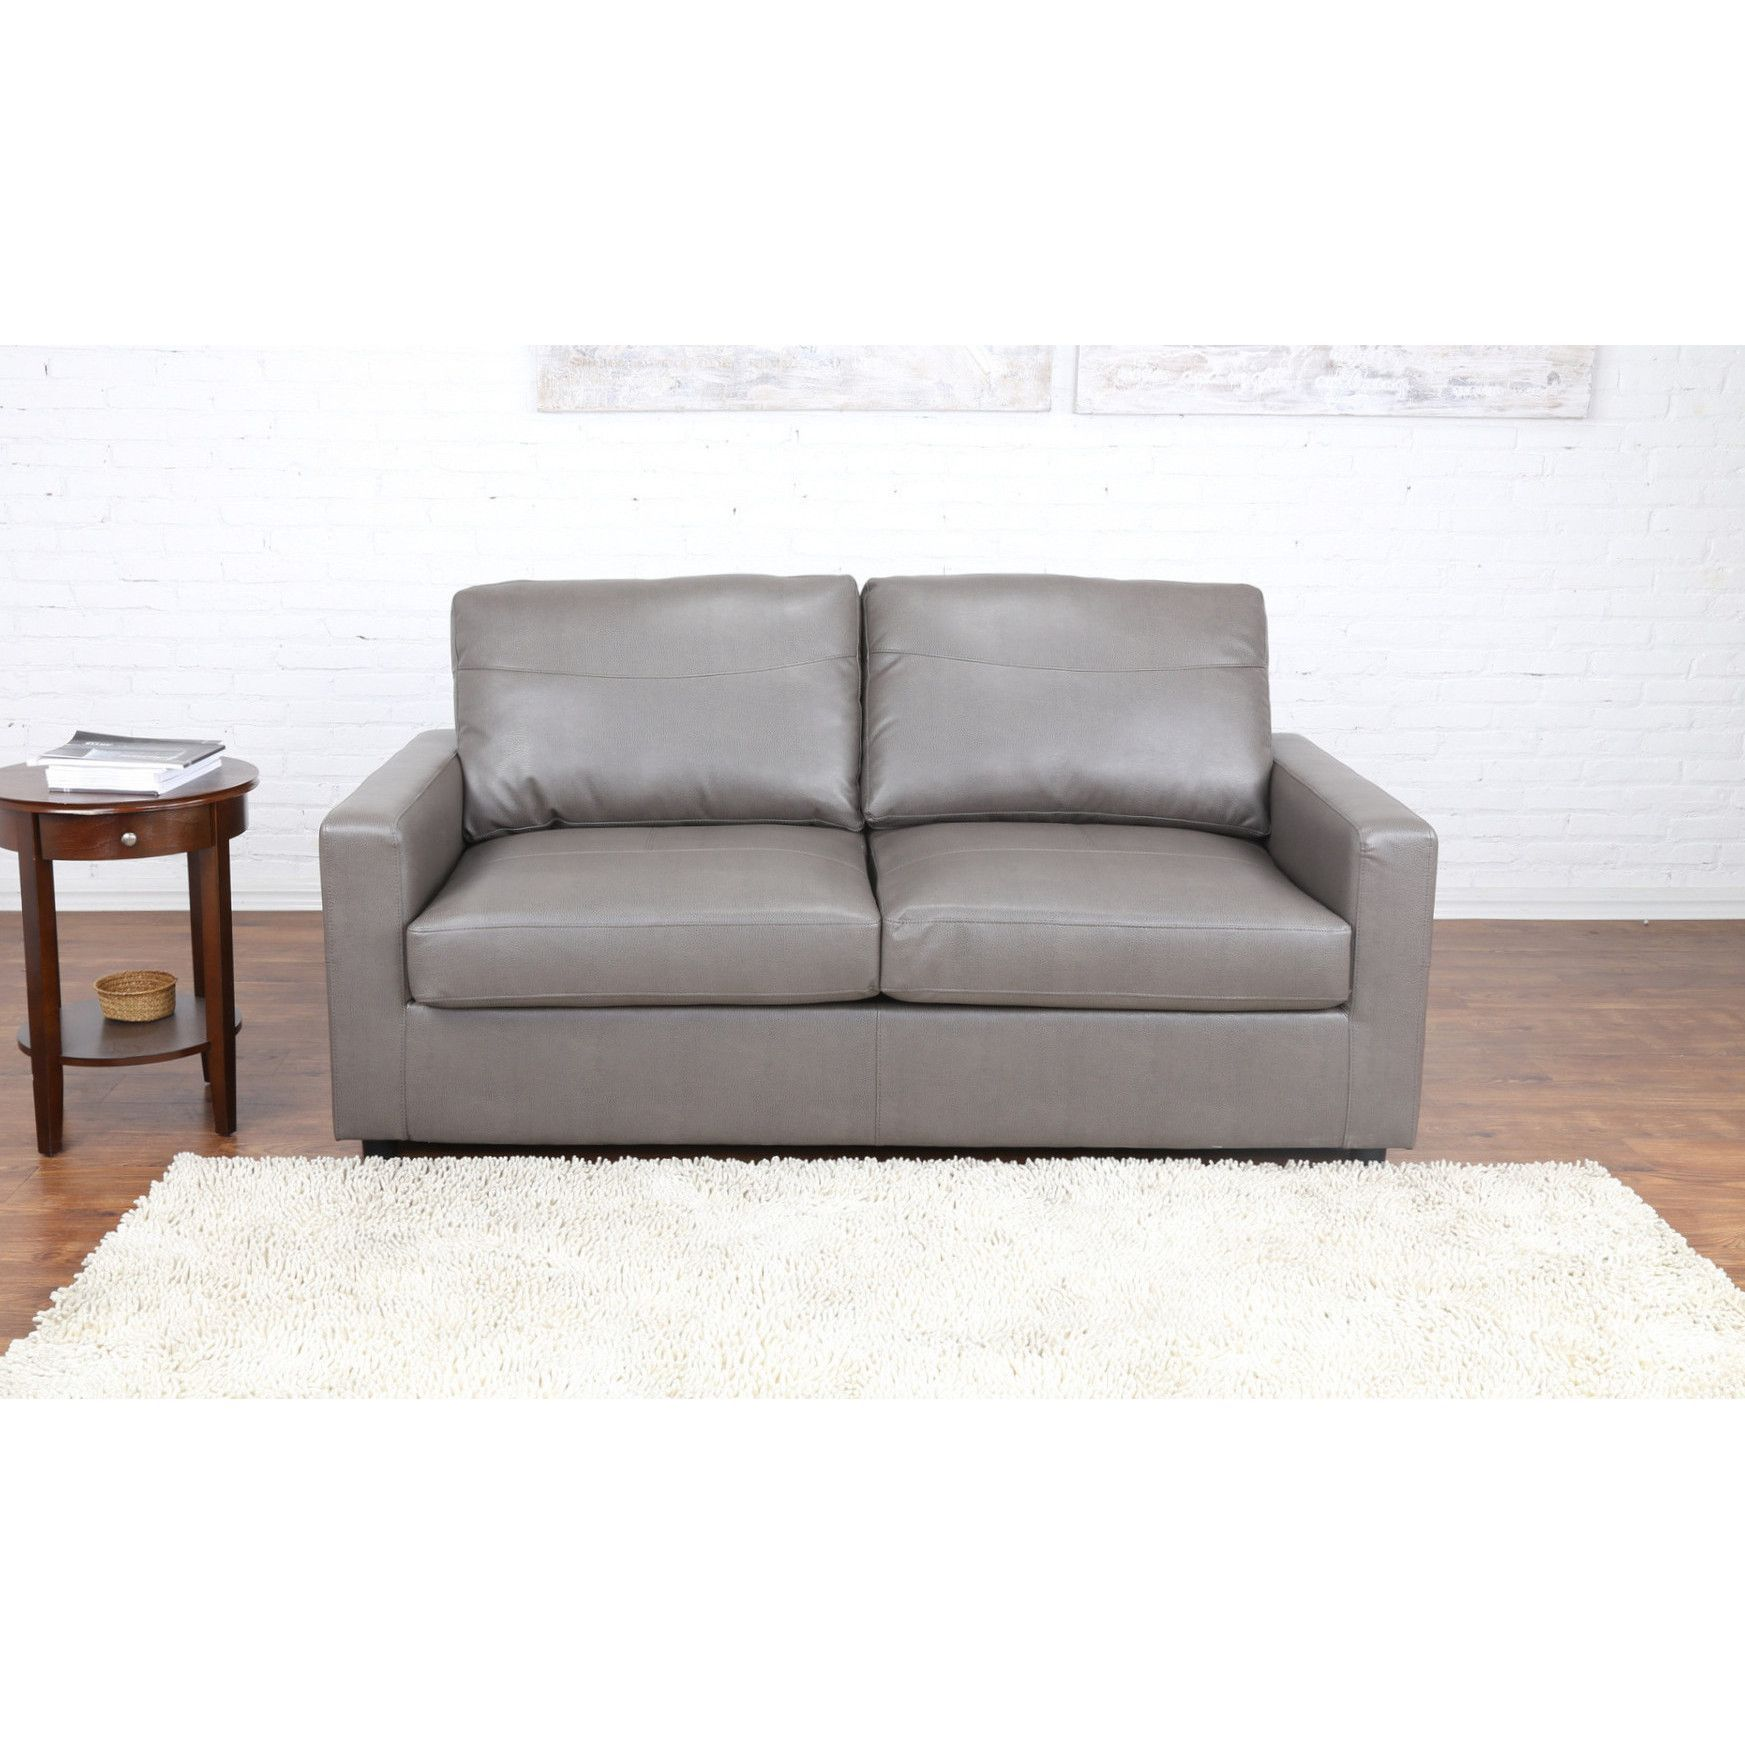 of a sensational ii baja walmart faux for size leather vintage pictures tufted your sofa sleeper full convert colors design great multiple novogratz